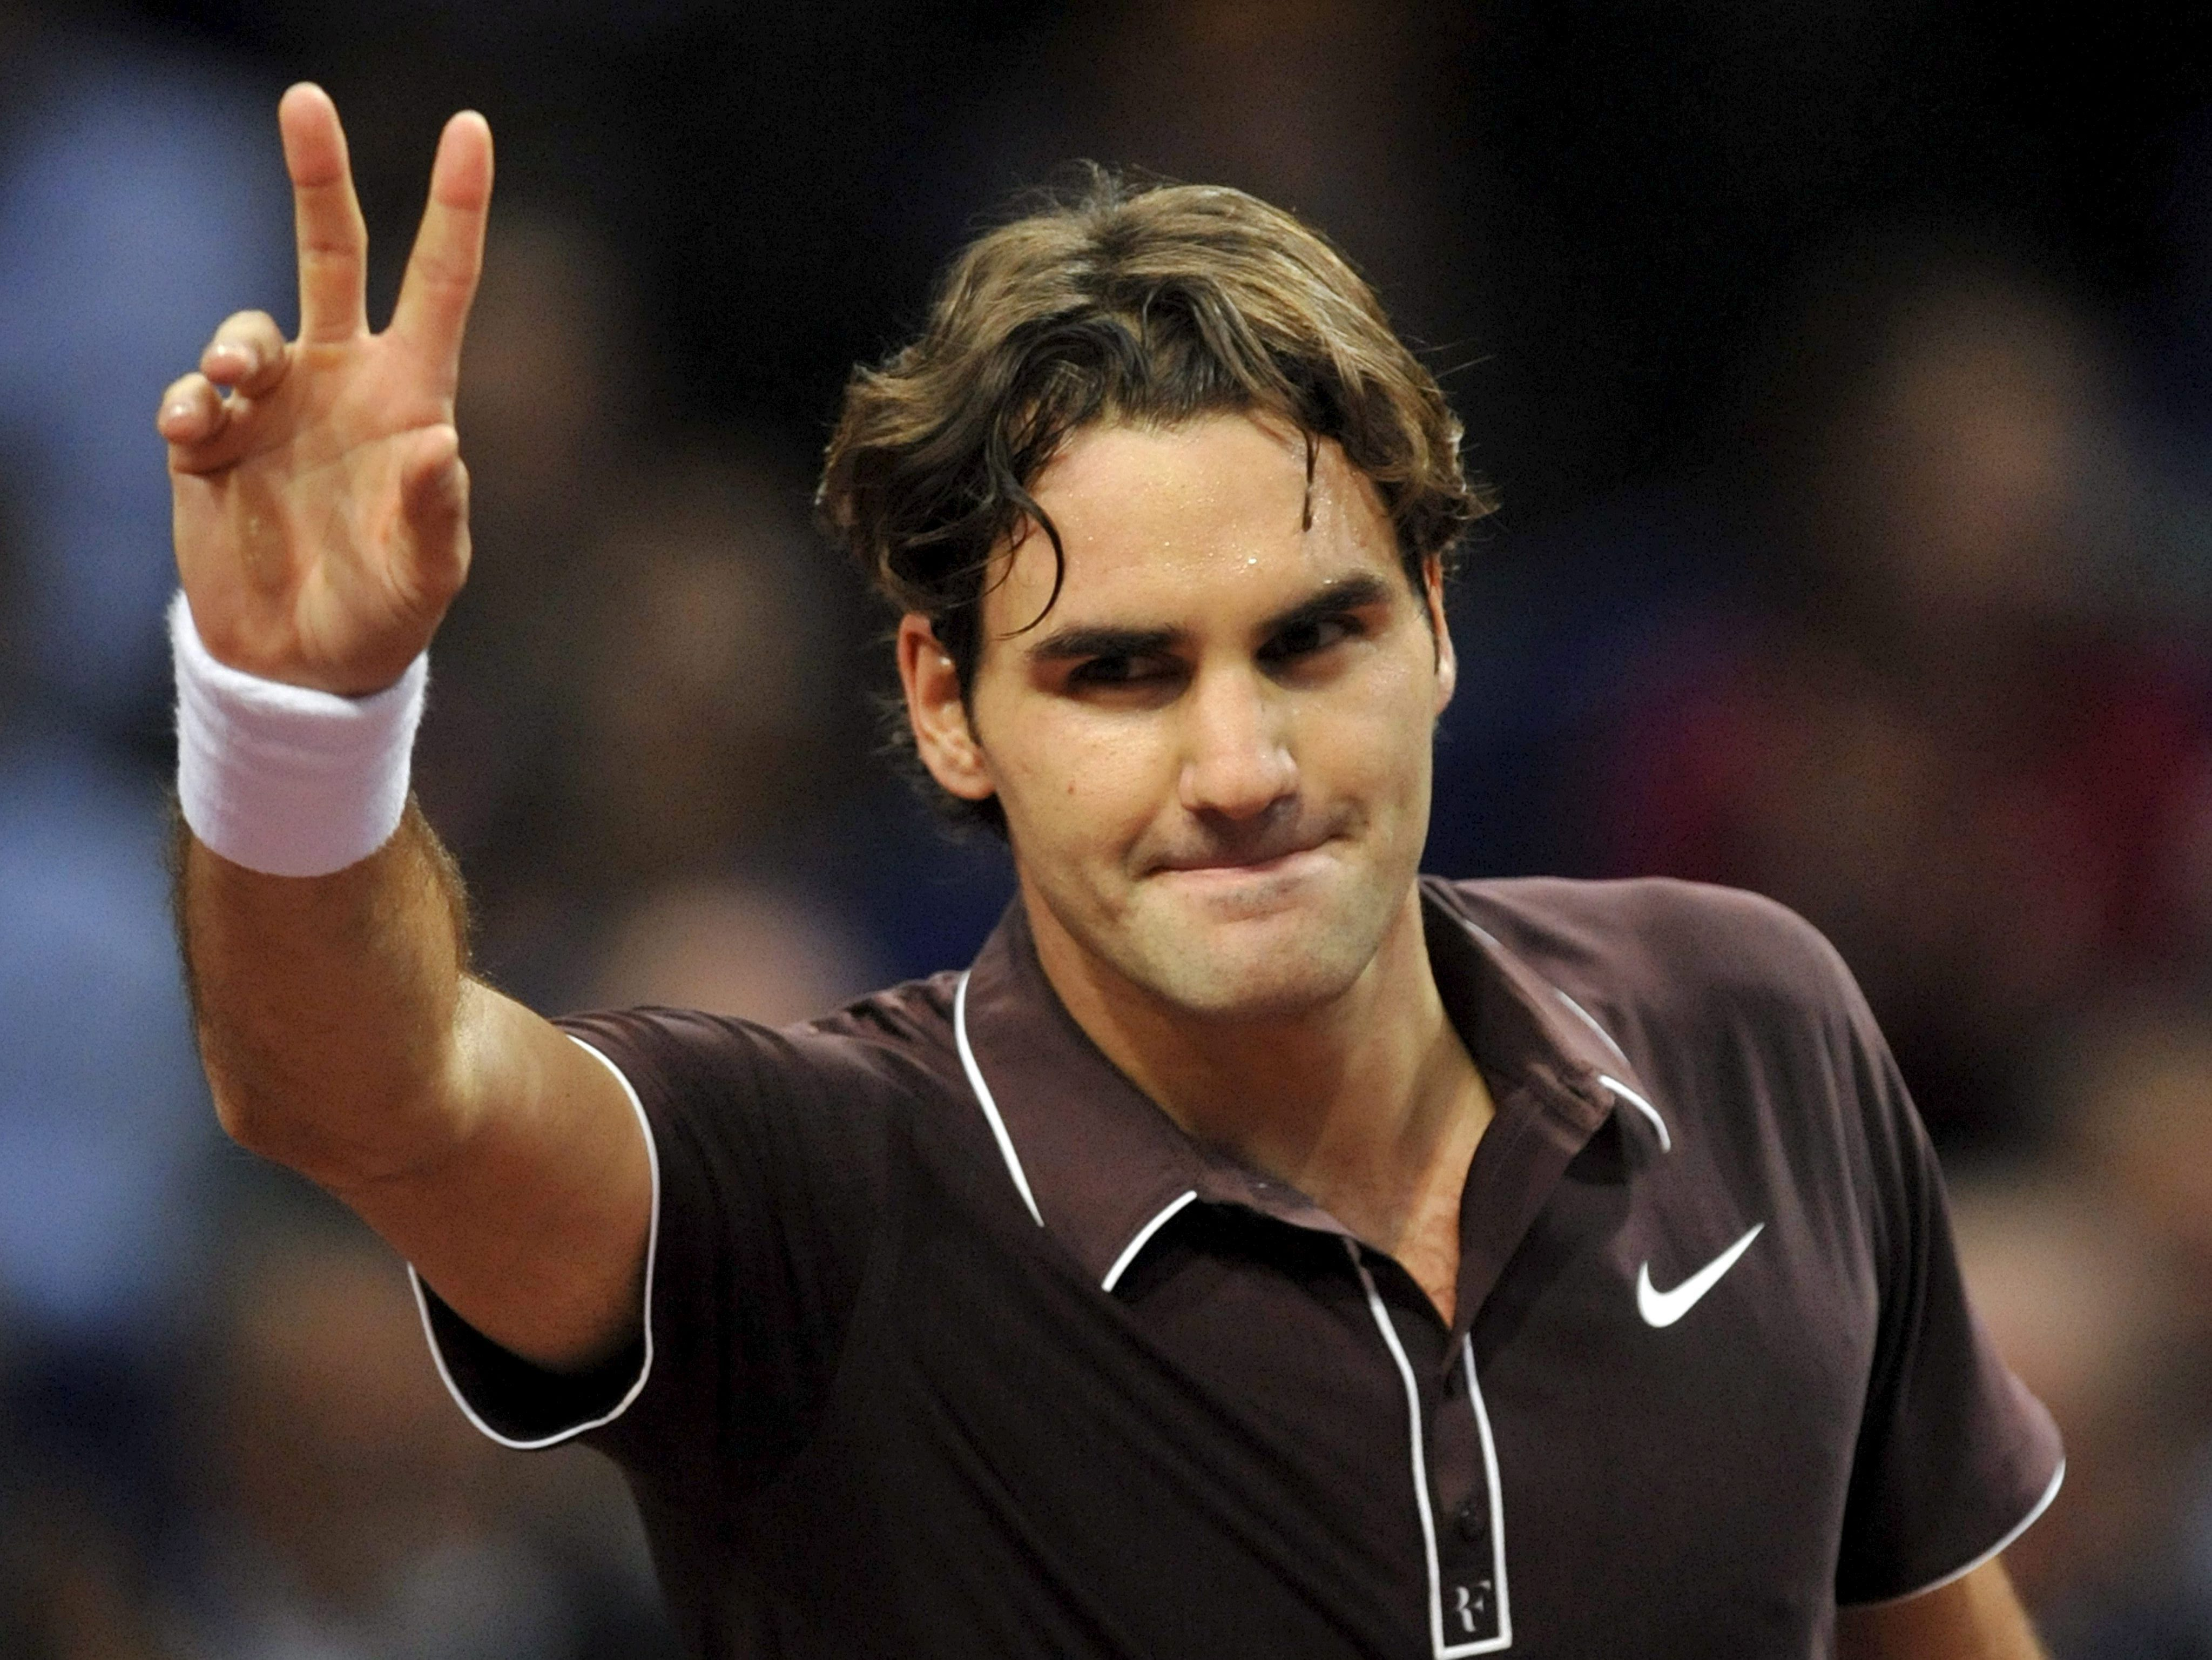 Roger Federer Hd: Roger Federer Wallpapers Images Photos Pictures Backgrounds